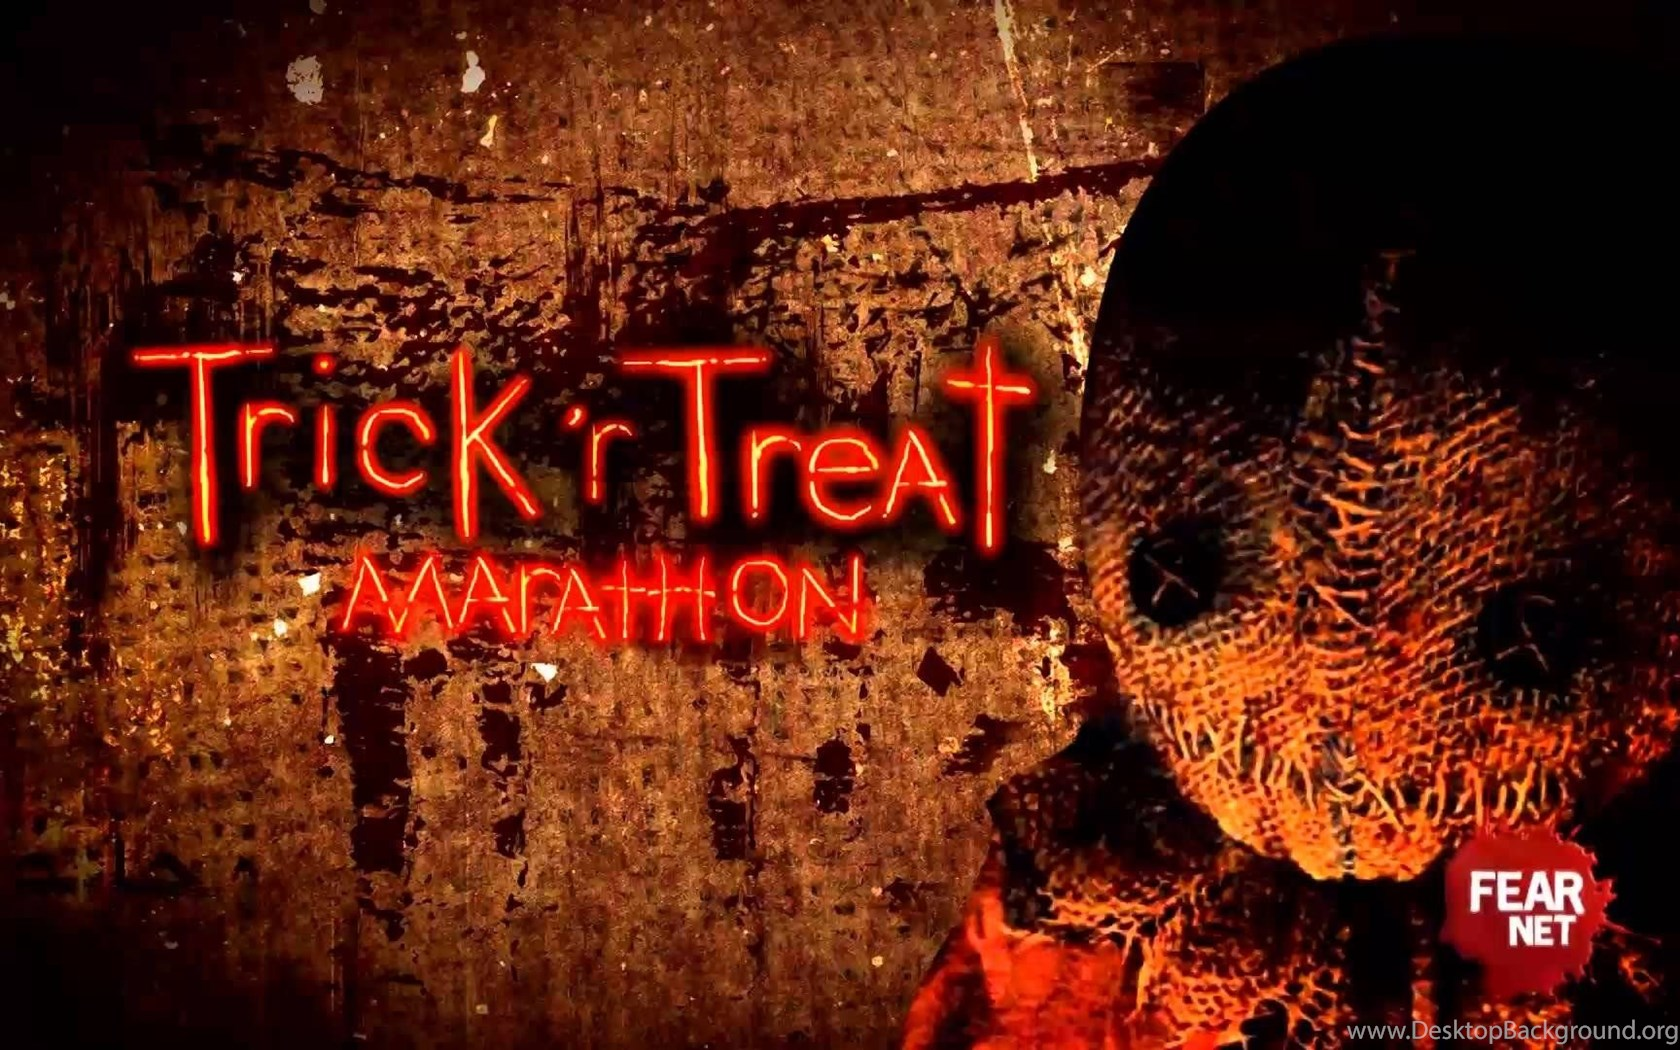 TRICK R TREAT Horror Thriller Dark Halloween Movie Film (42